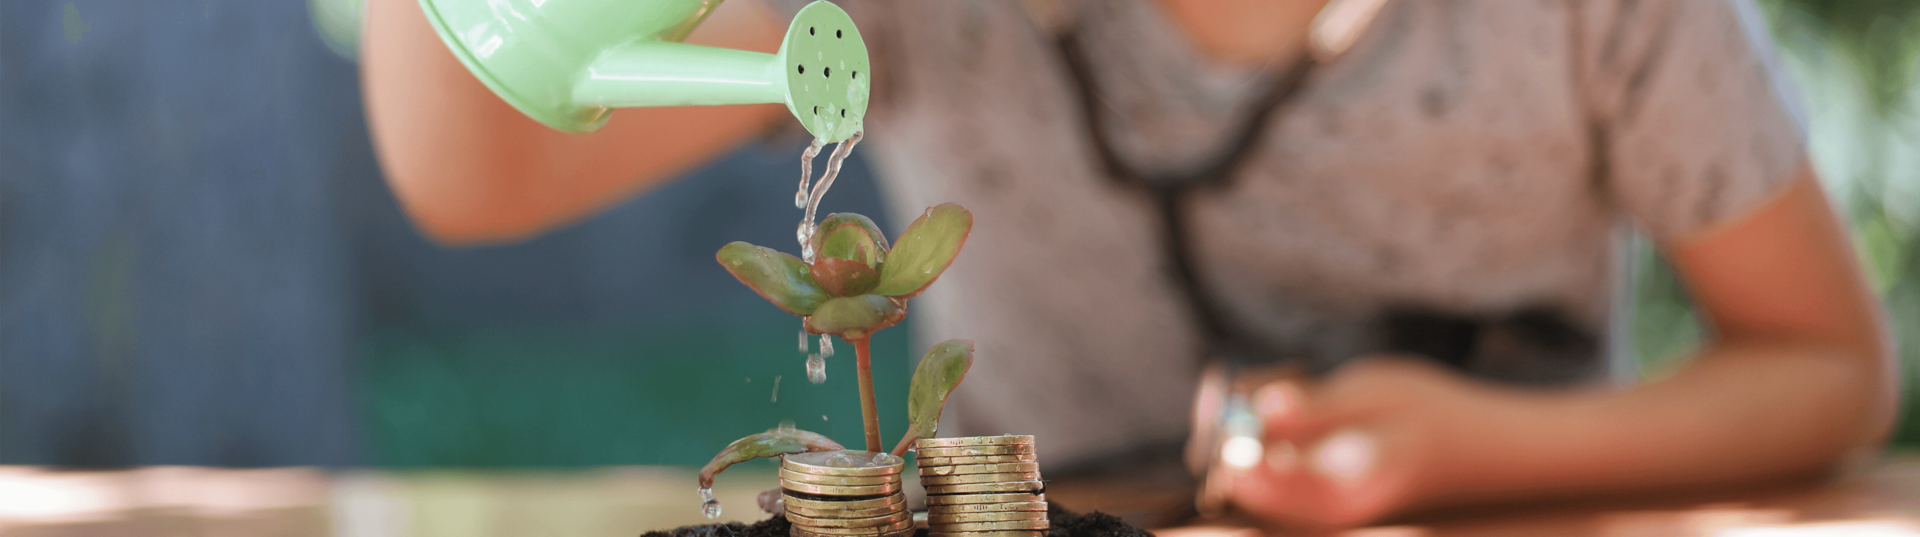 girl watering money plant